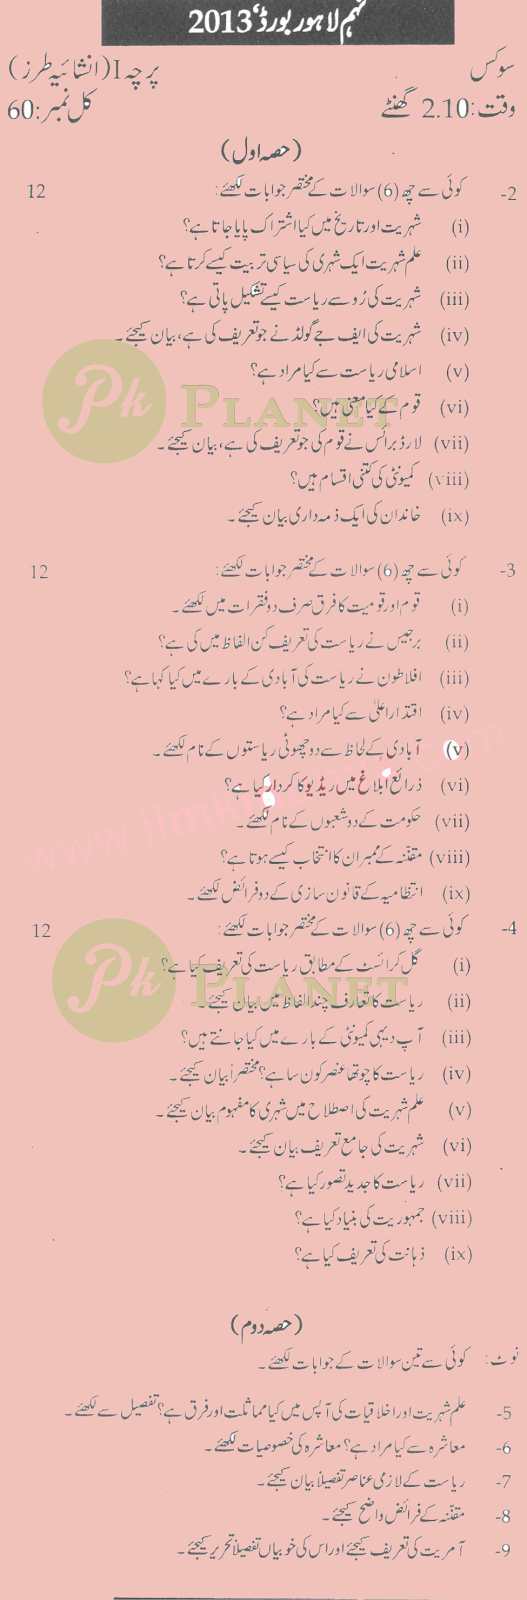 Past Papers of 9th Class Lahore Board Civics 2013